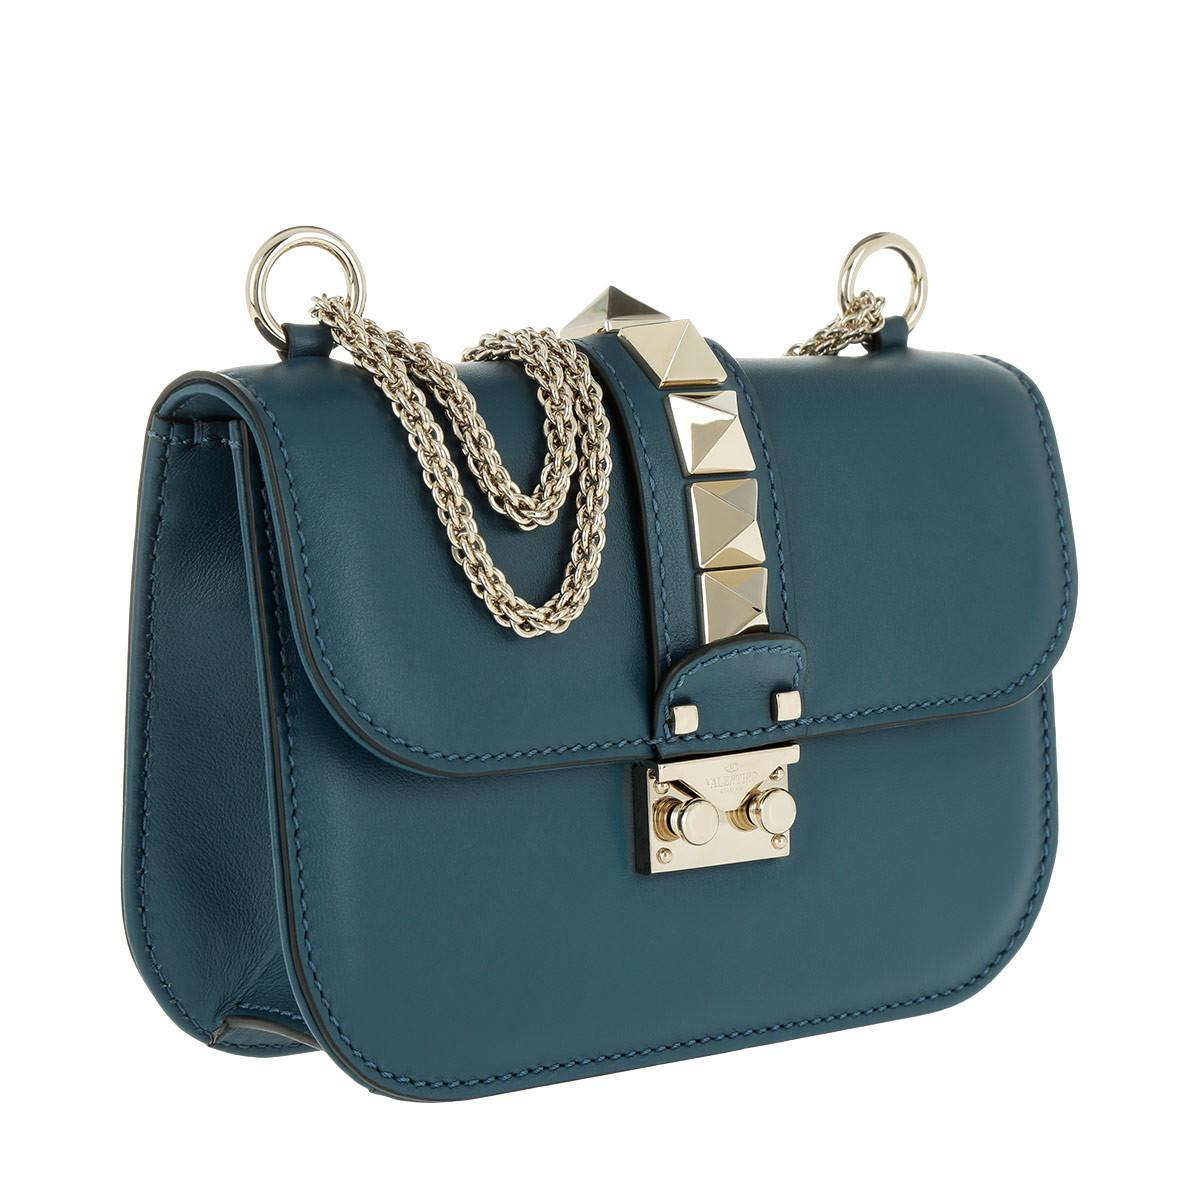 397667ca71 Gallery. Previously sold at: Fashionette · Women's Valentino Rockstud Bags  ...